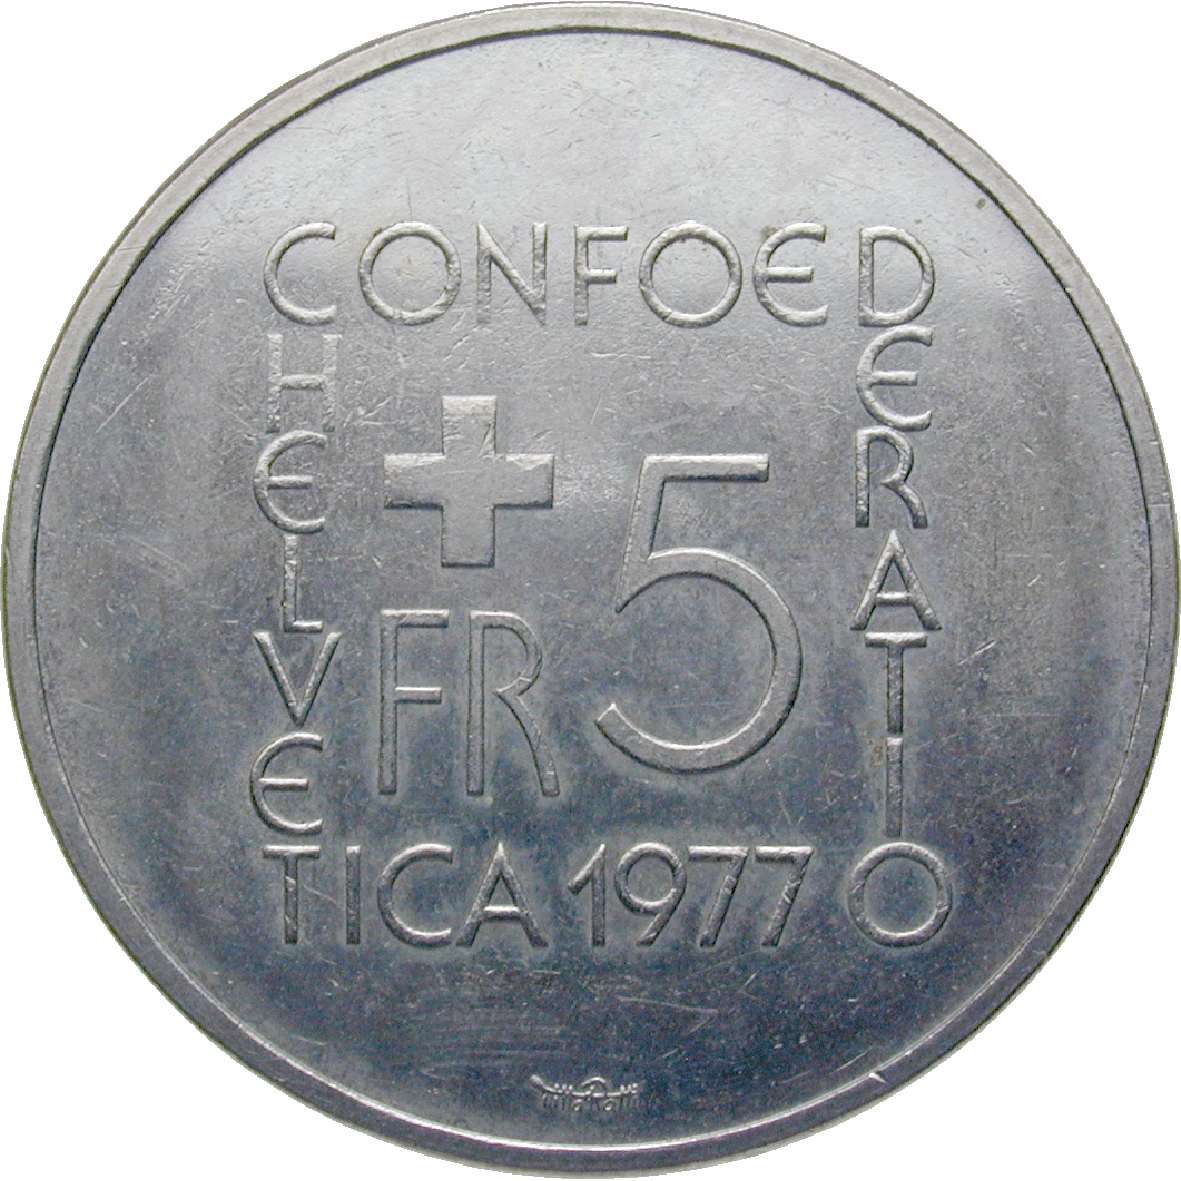 Swiss Confederation, 5 Franks 1977 (reverse)